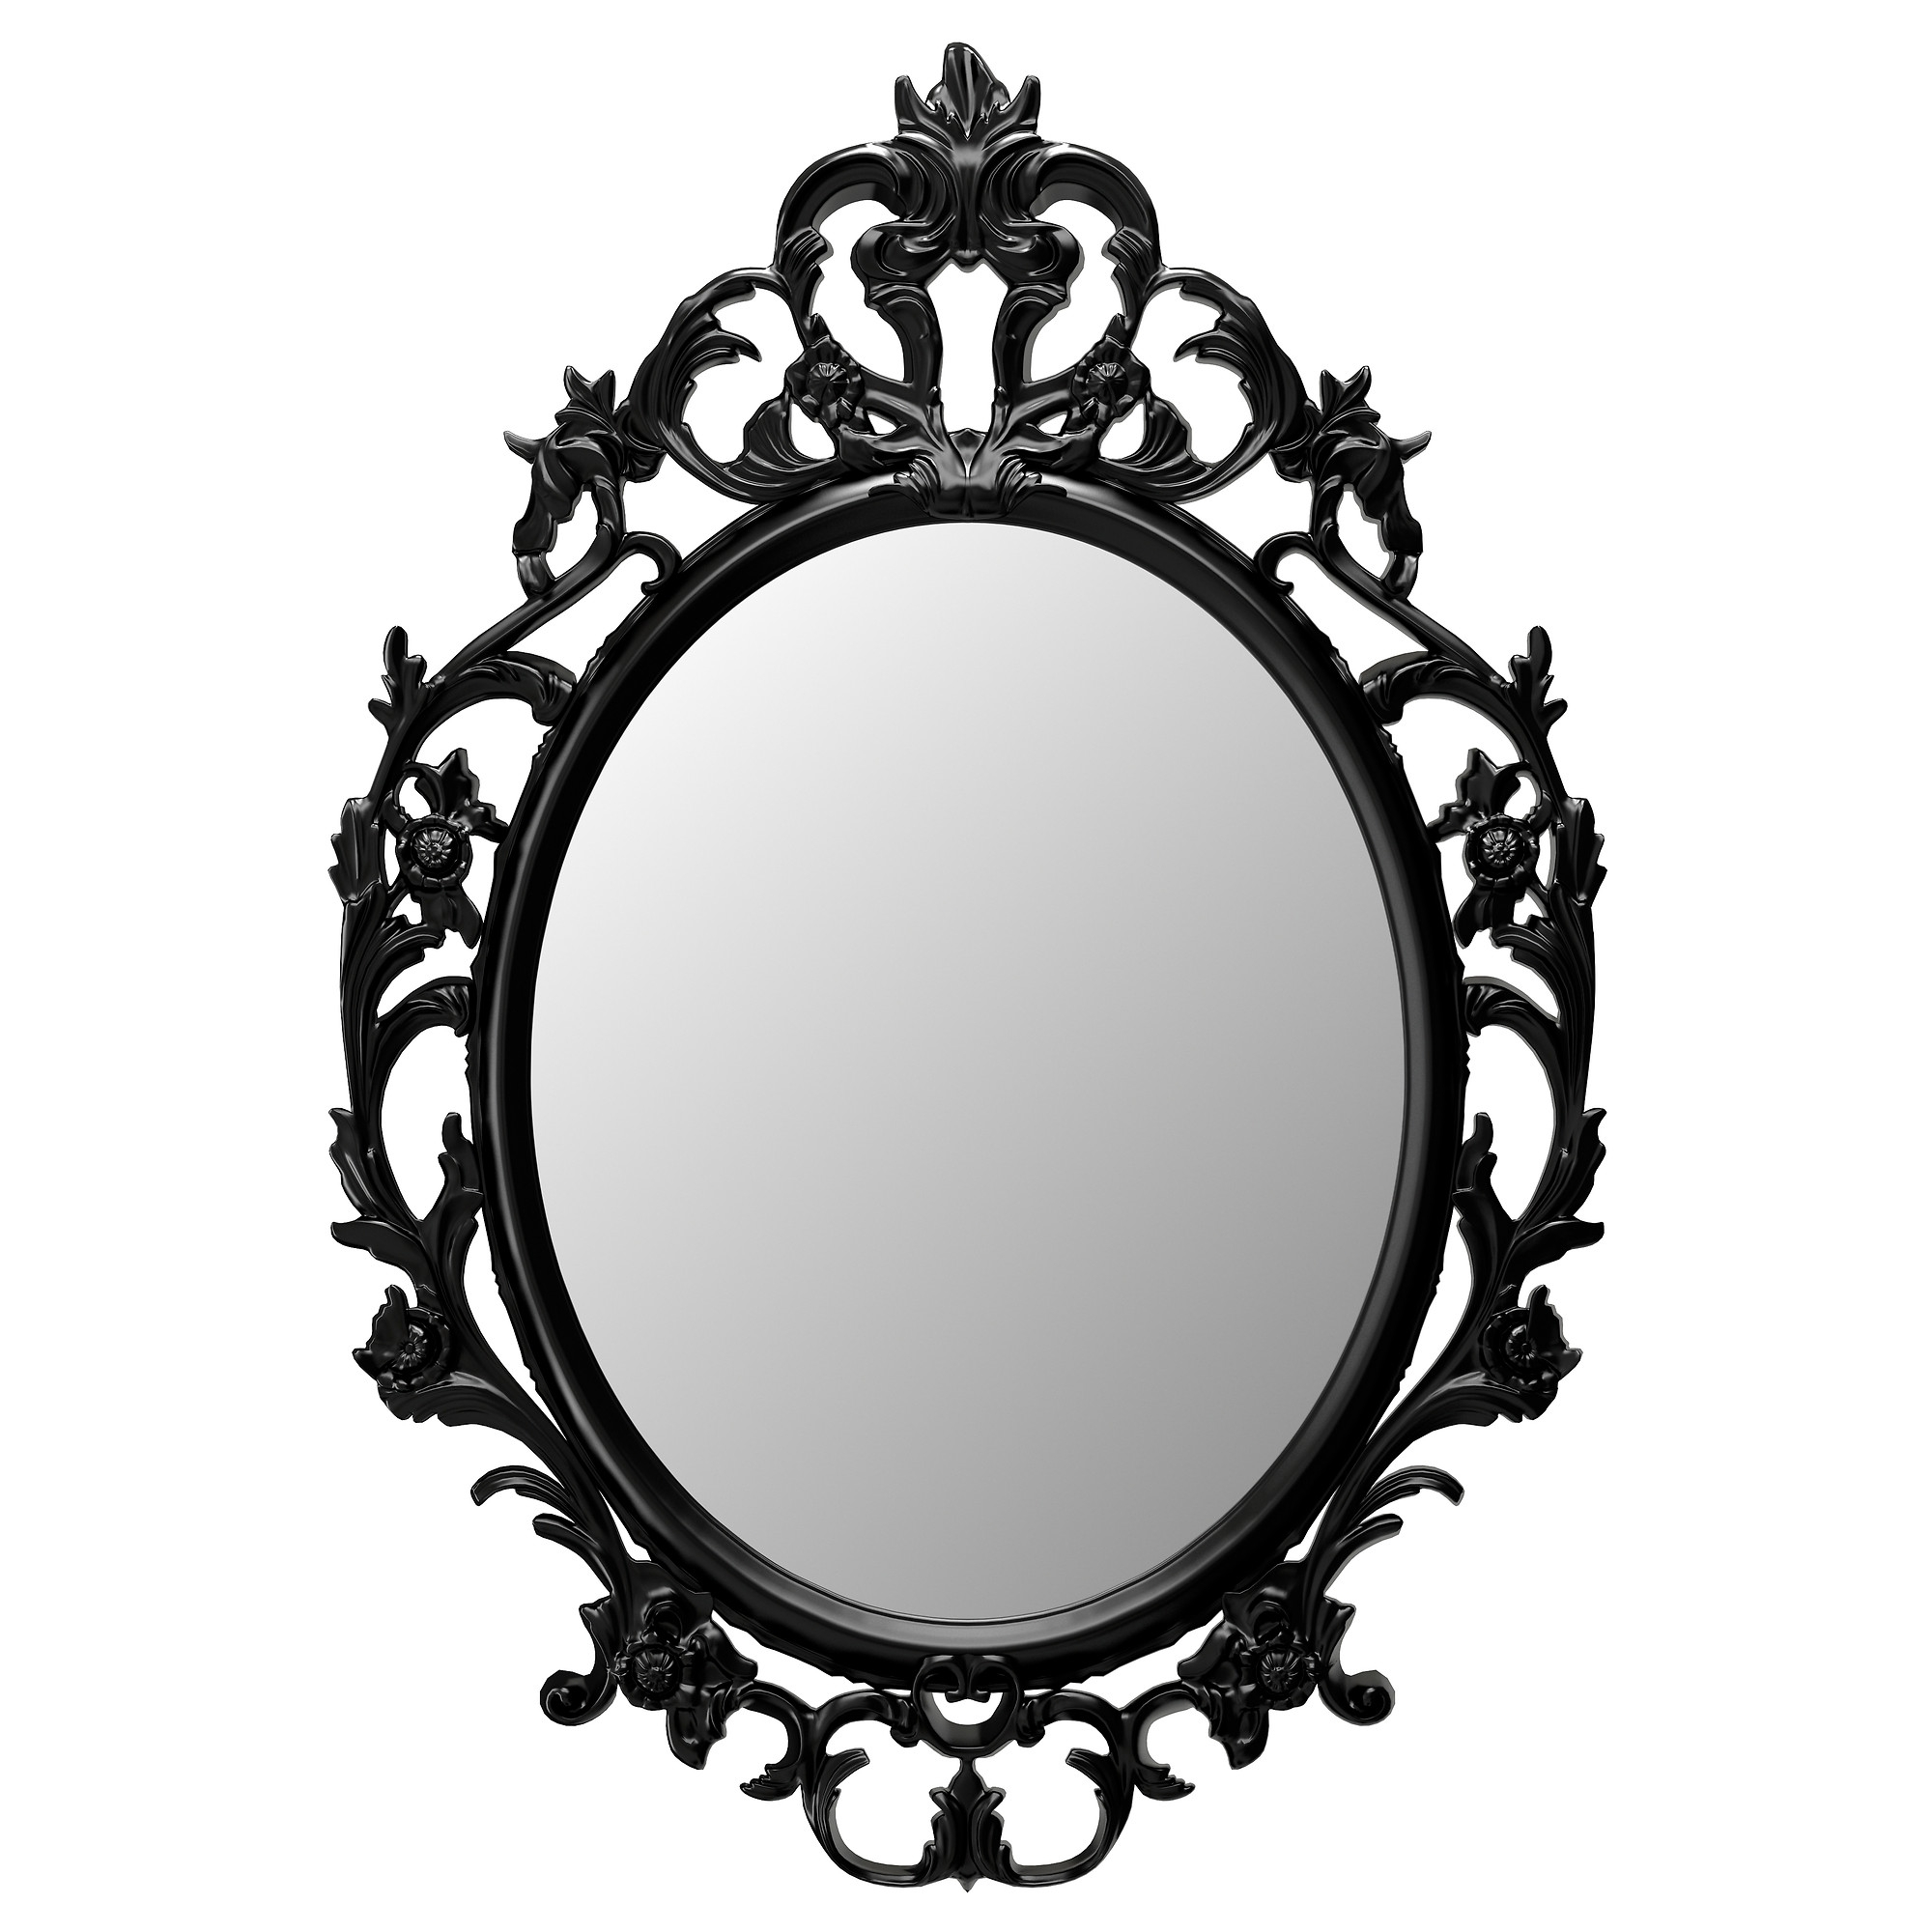 Wall Mirrors Ikea Pertaining To Black Ornate Mirrors (Image 13 of 15)